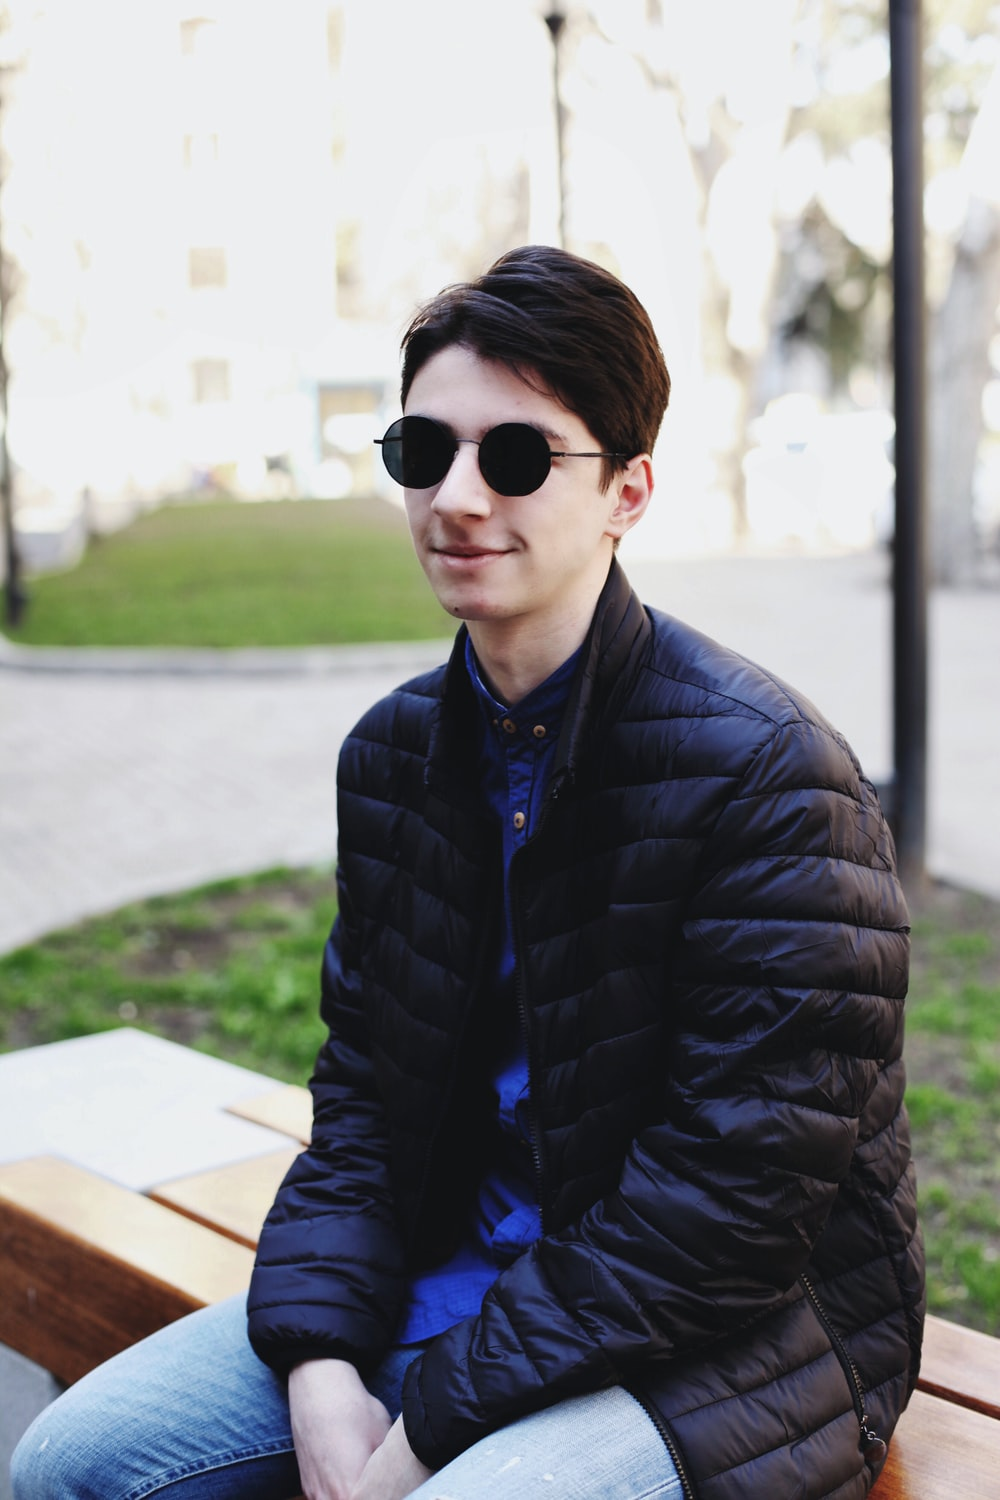 man in black bubble jacket wearing black sunglasses sitting on bench during daytime